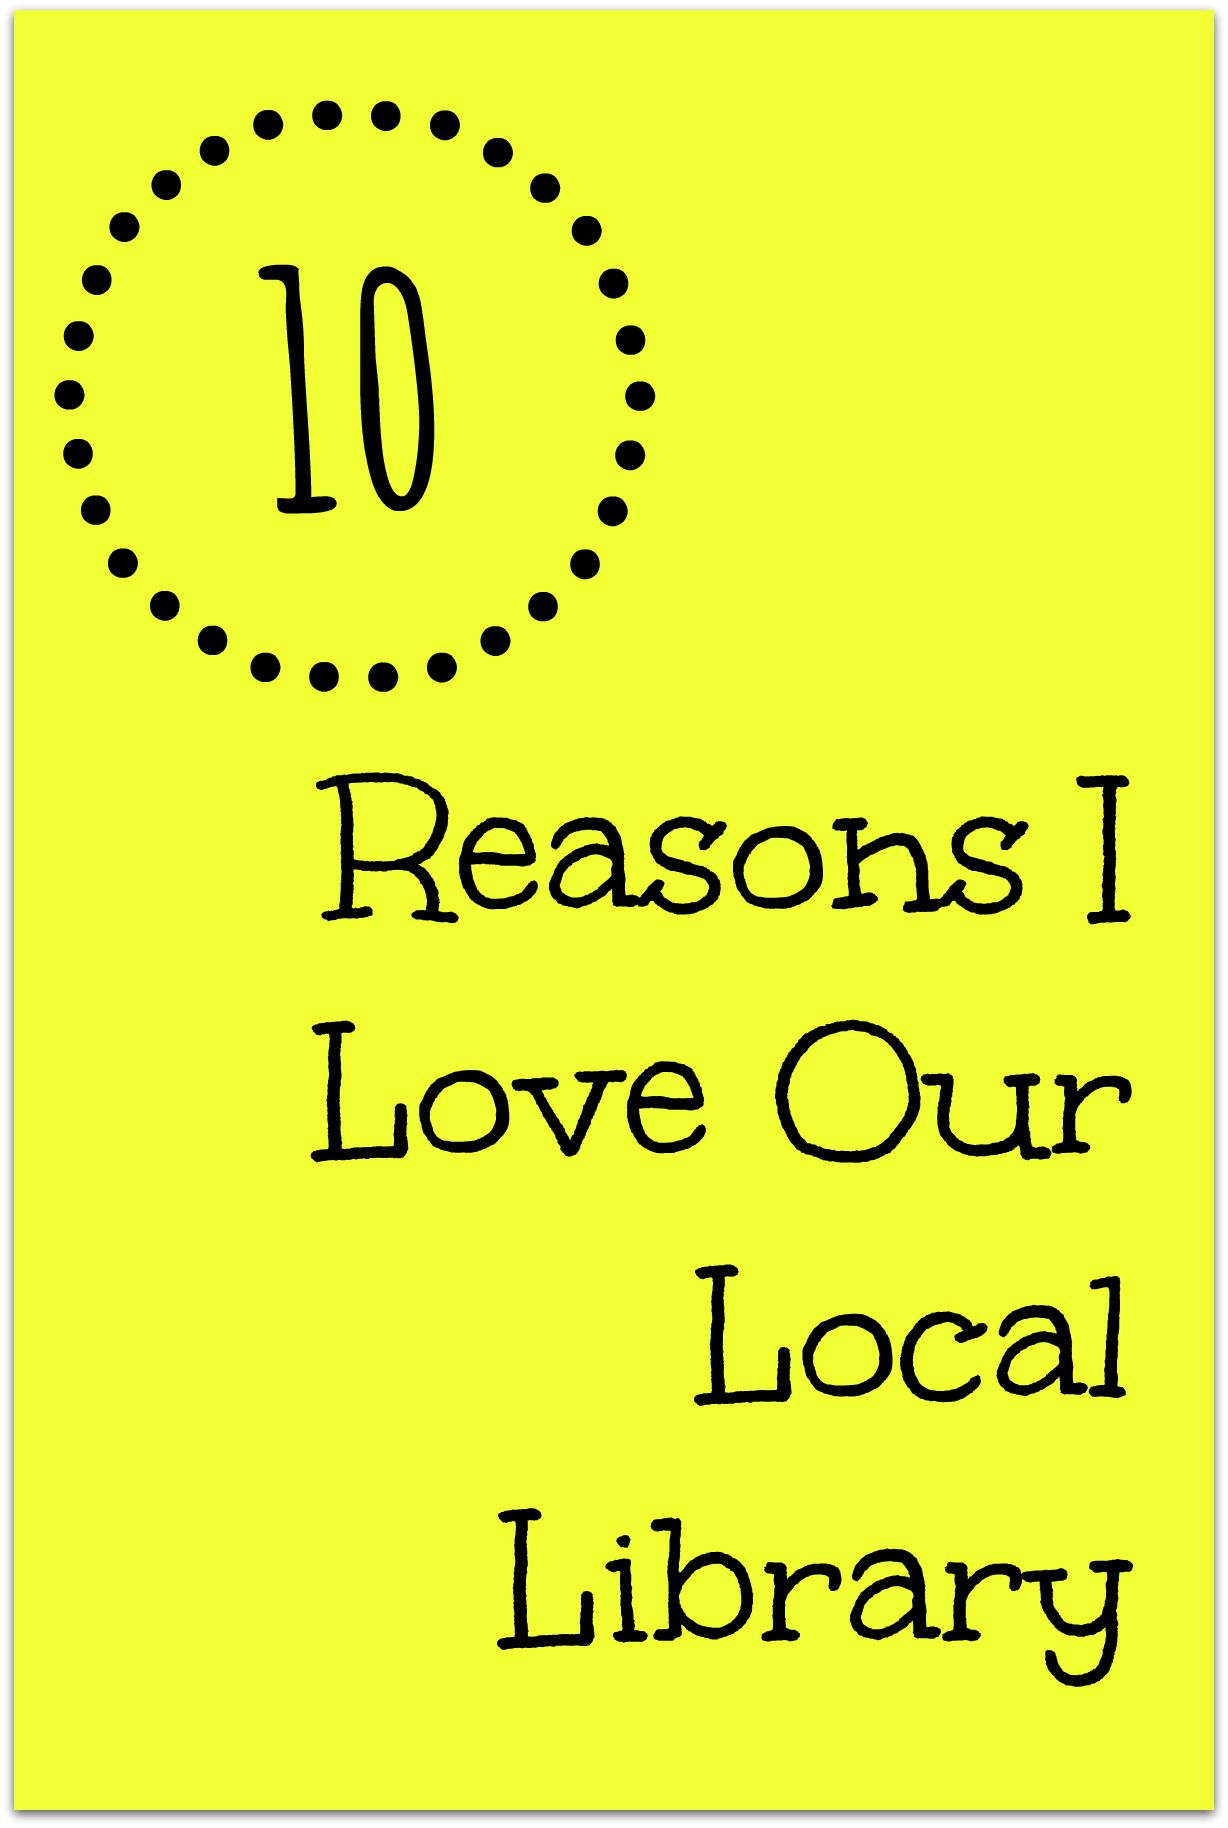 10 Reasons I Love Our Local Library